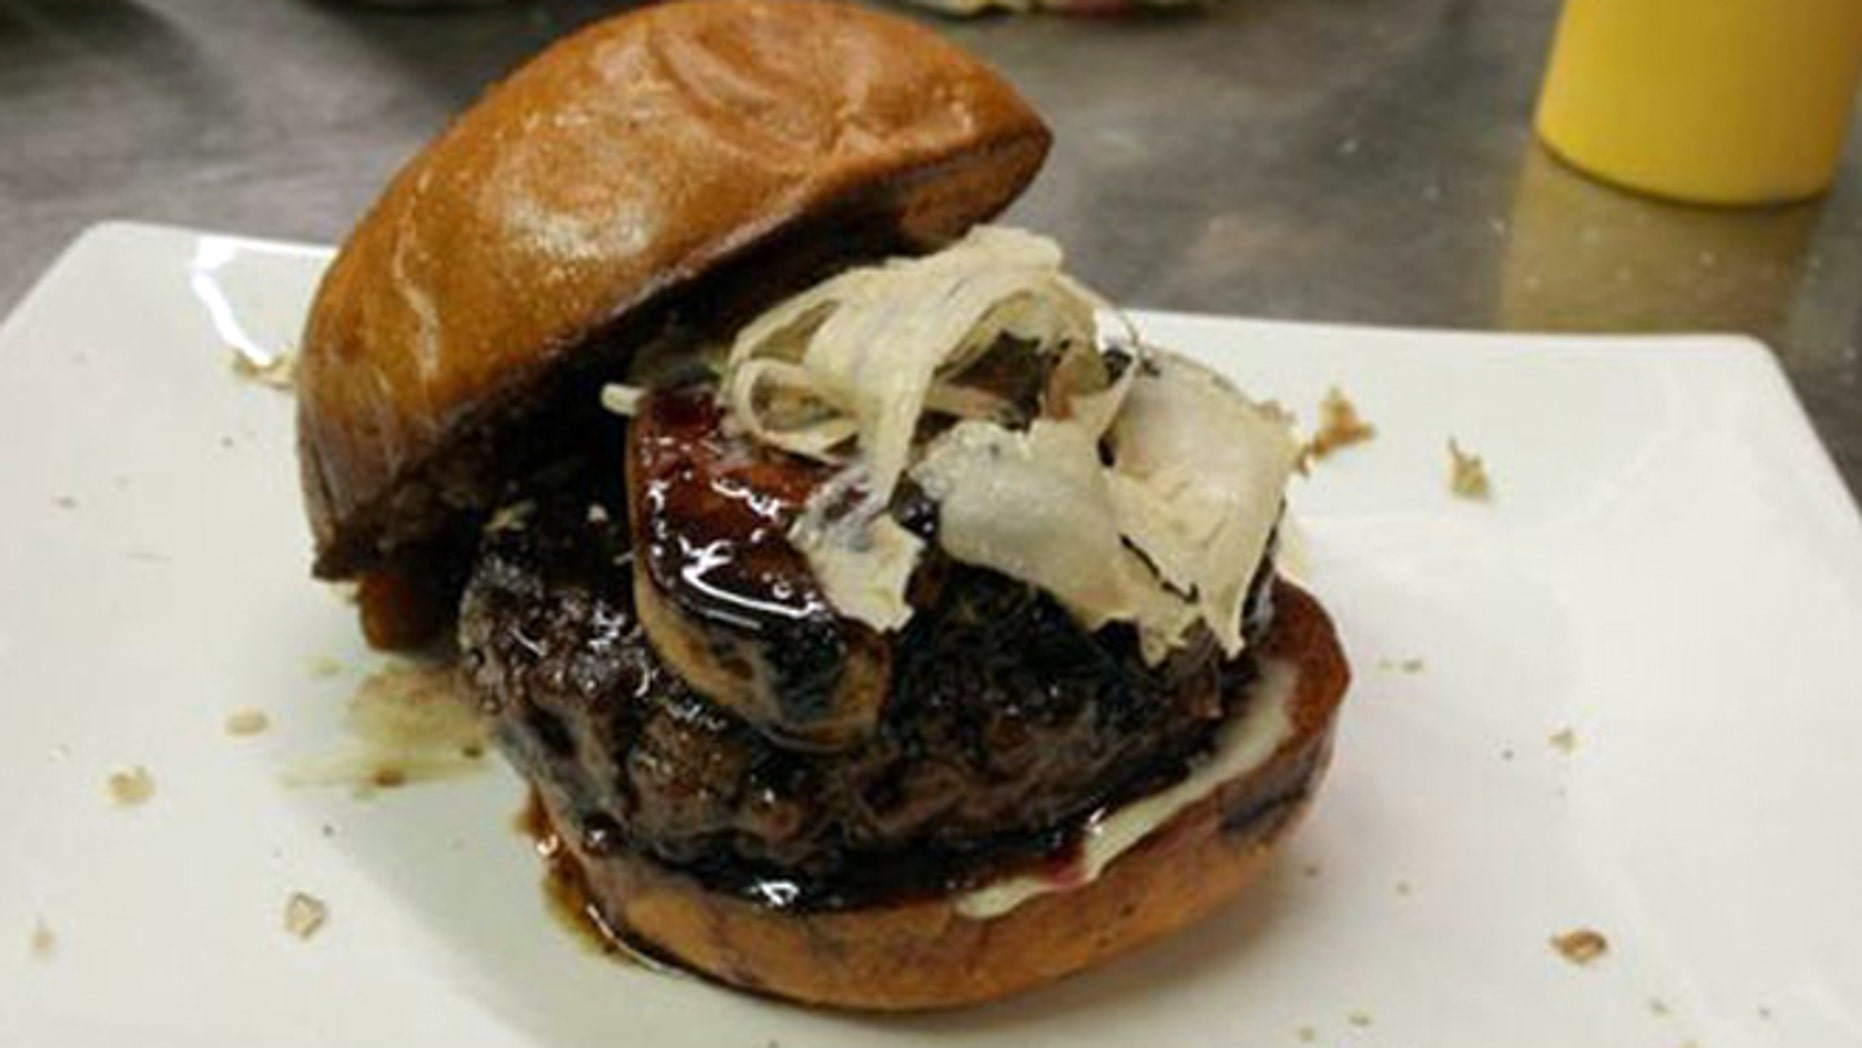 The MNO Burger is topped with truffles, foie gras and port.